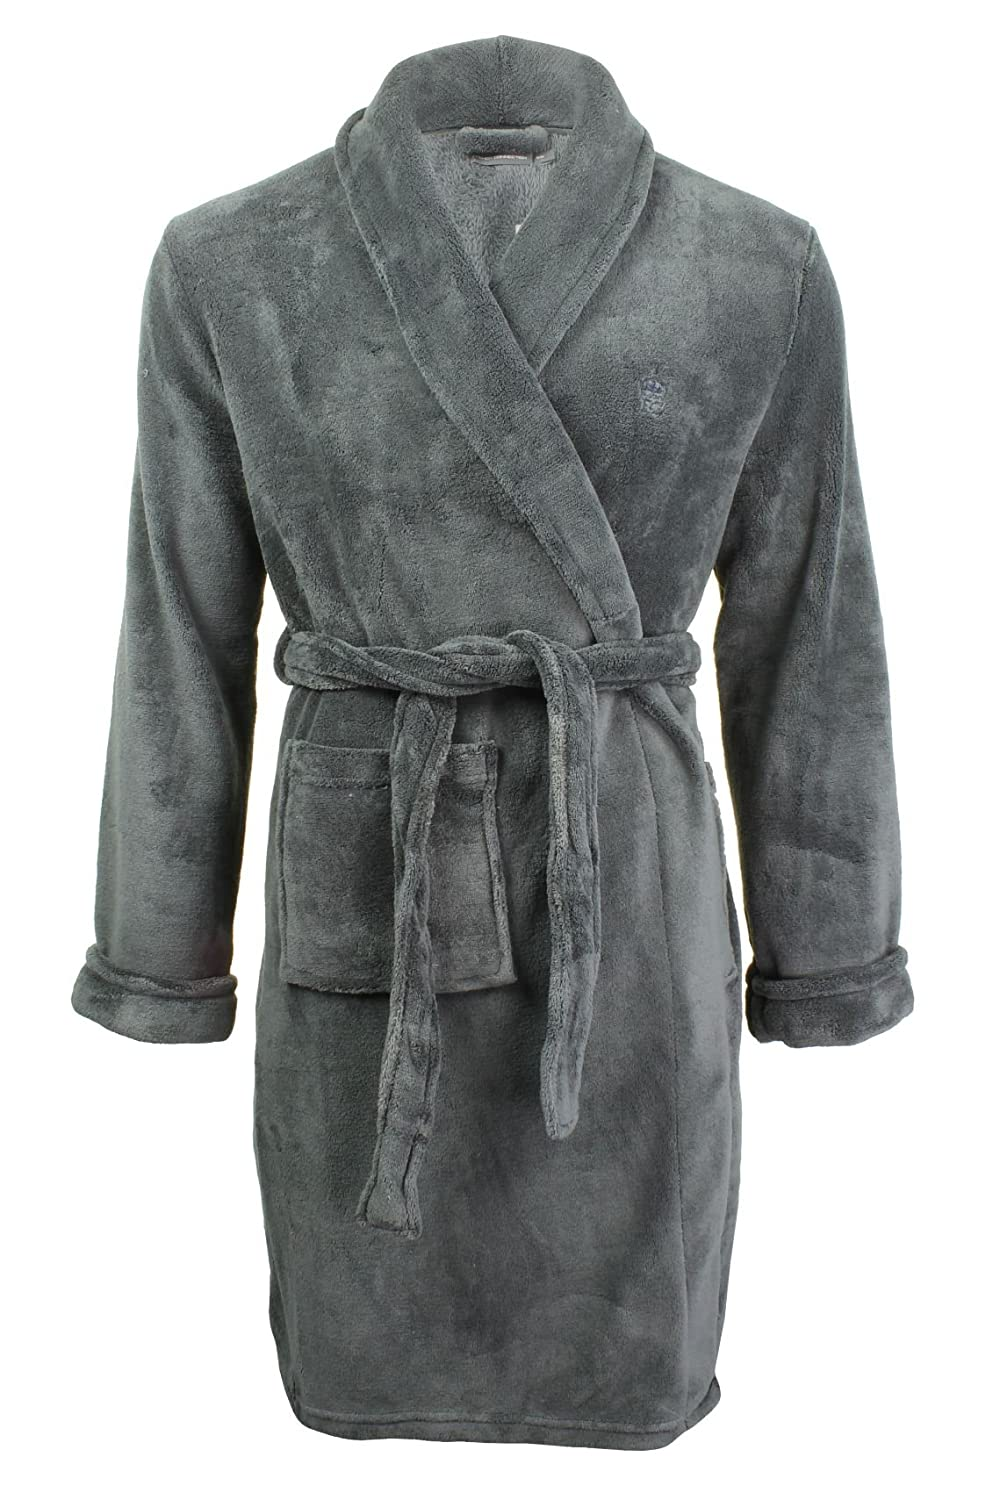 French Connection Men's Robe Dressing Gown Grey (Charcoal) X-Large (Size:L/XL) TGITK